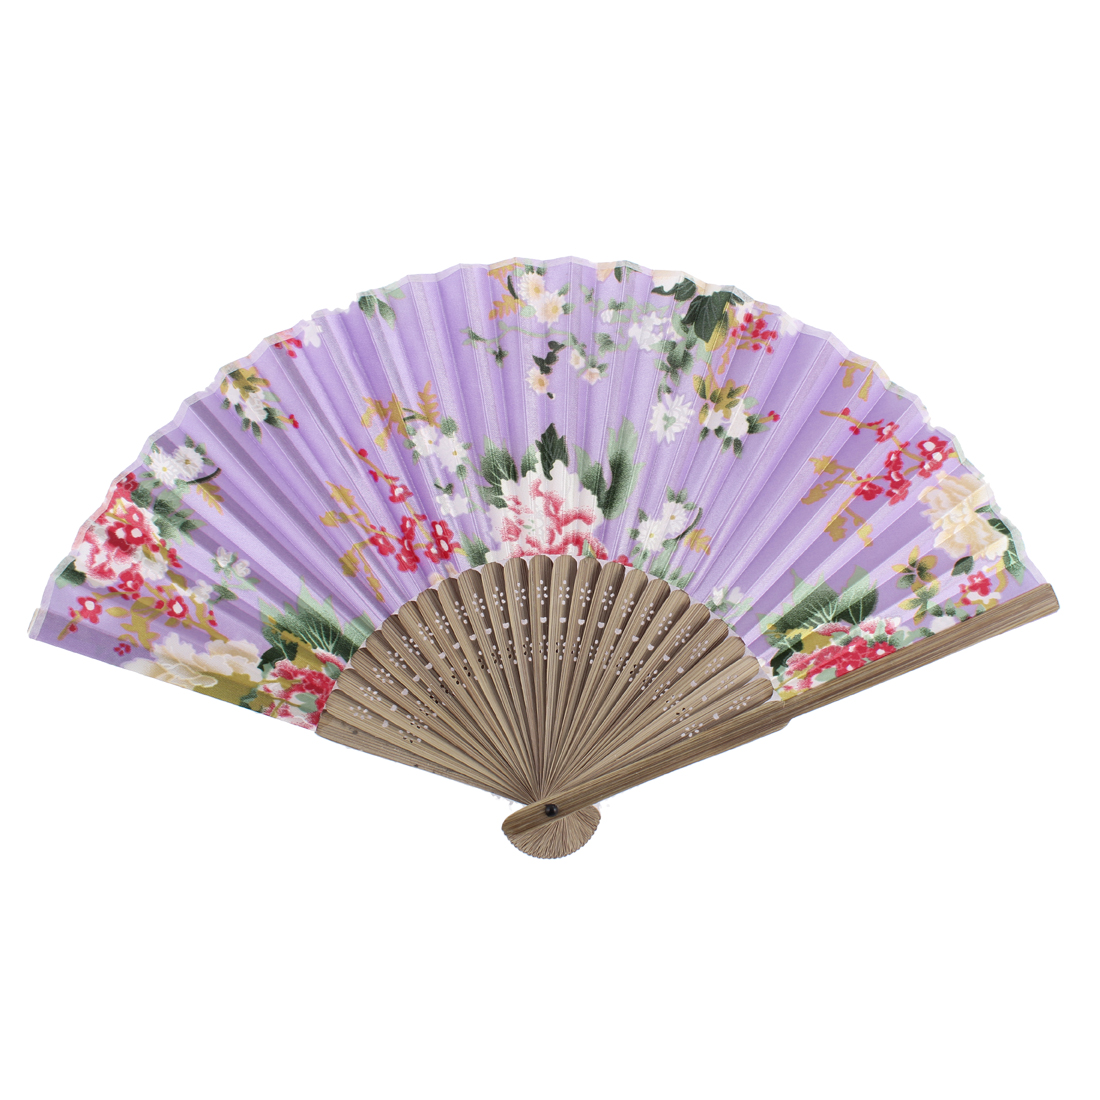 Flower Pattern Wood Rib Foldable Summer Portable Hand Fan Purple Light Brown